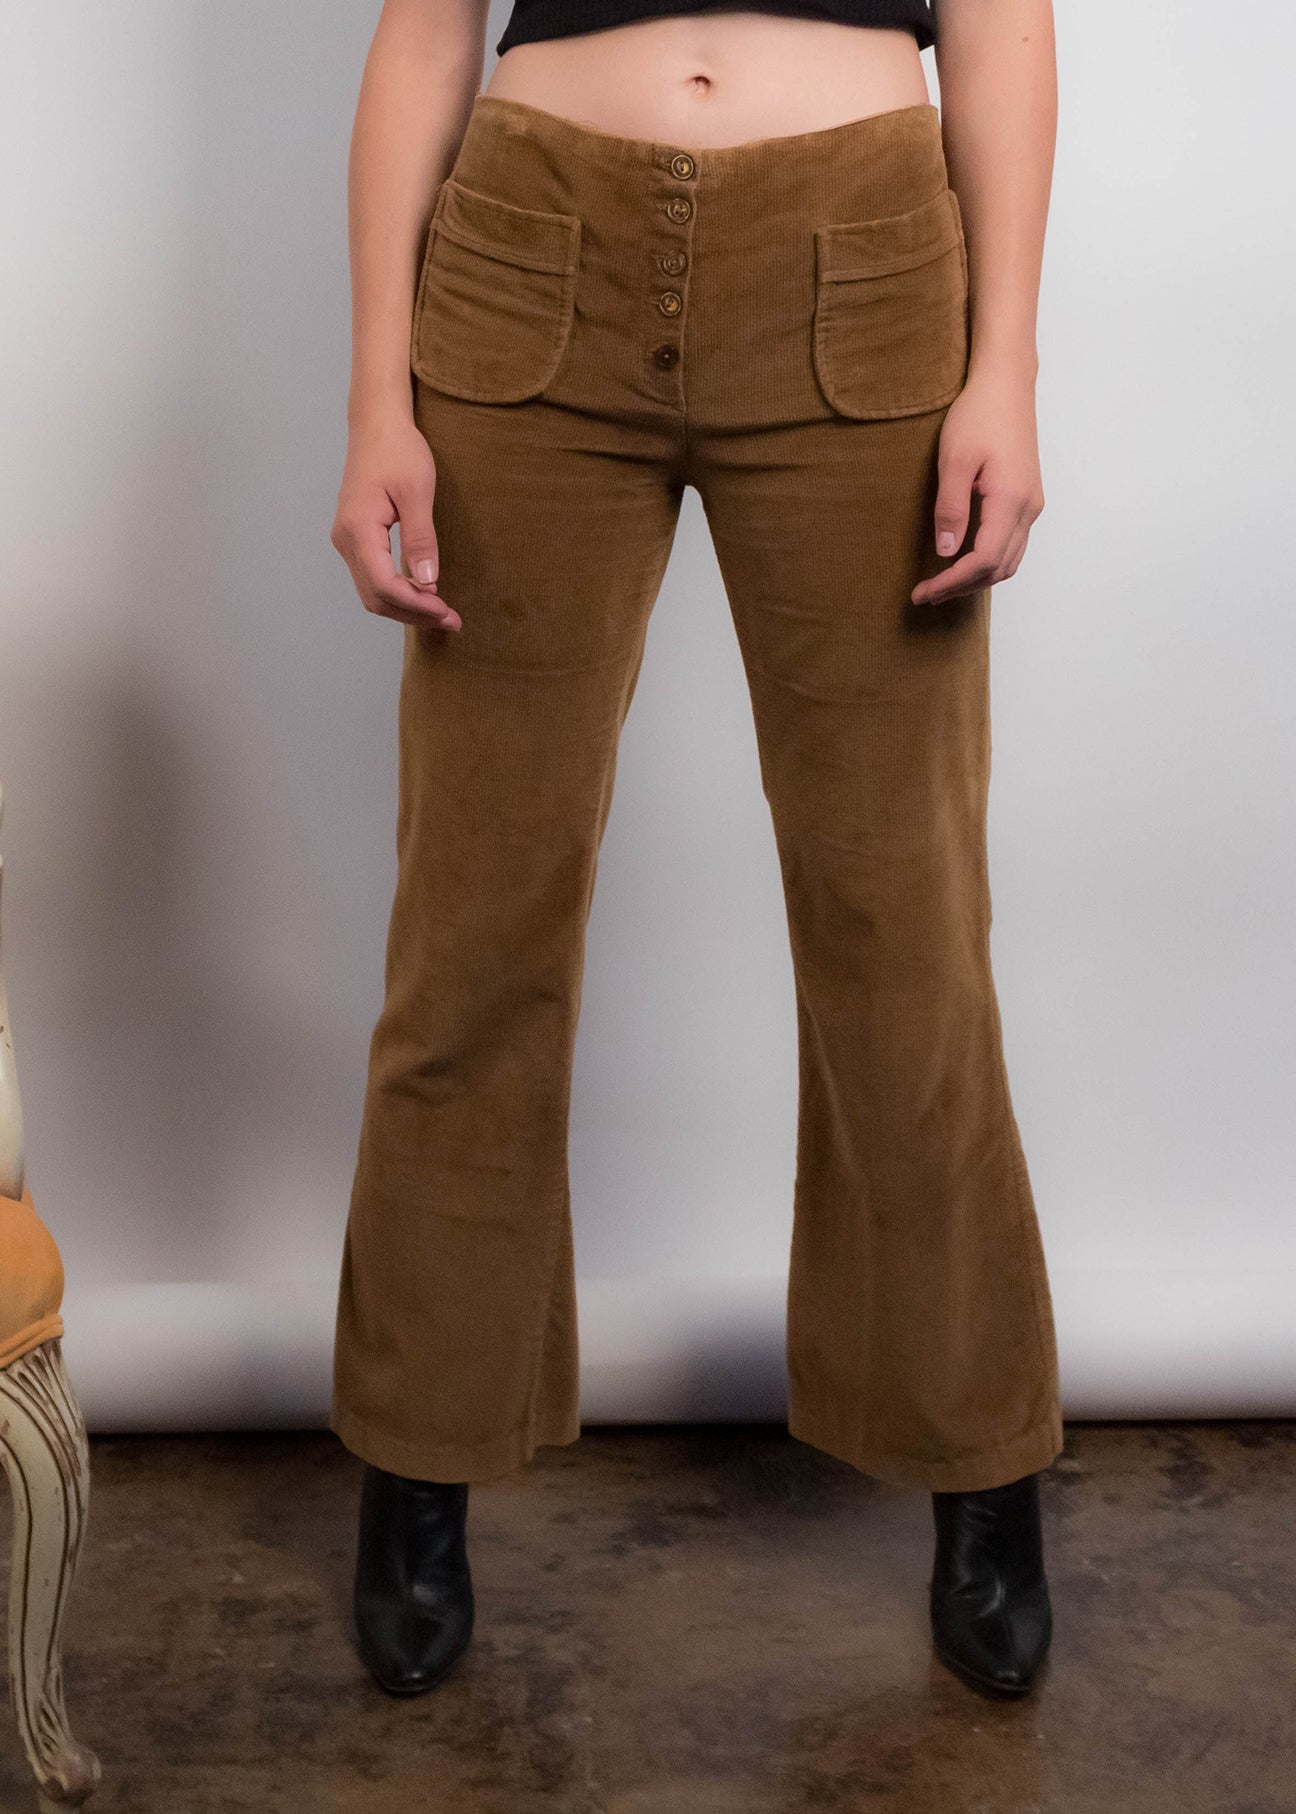 60s Corduroy Hip-Hugger Bell-Bottom Pants